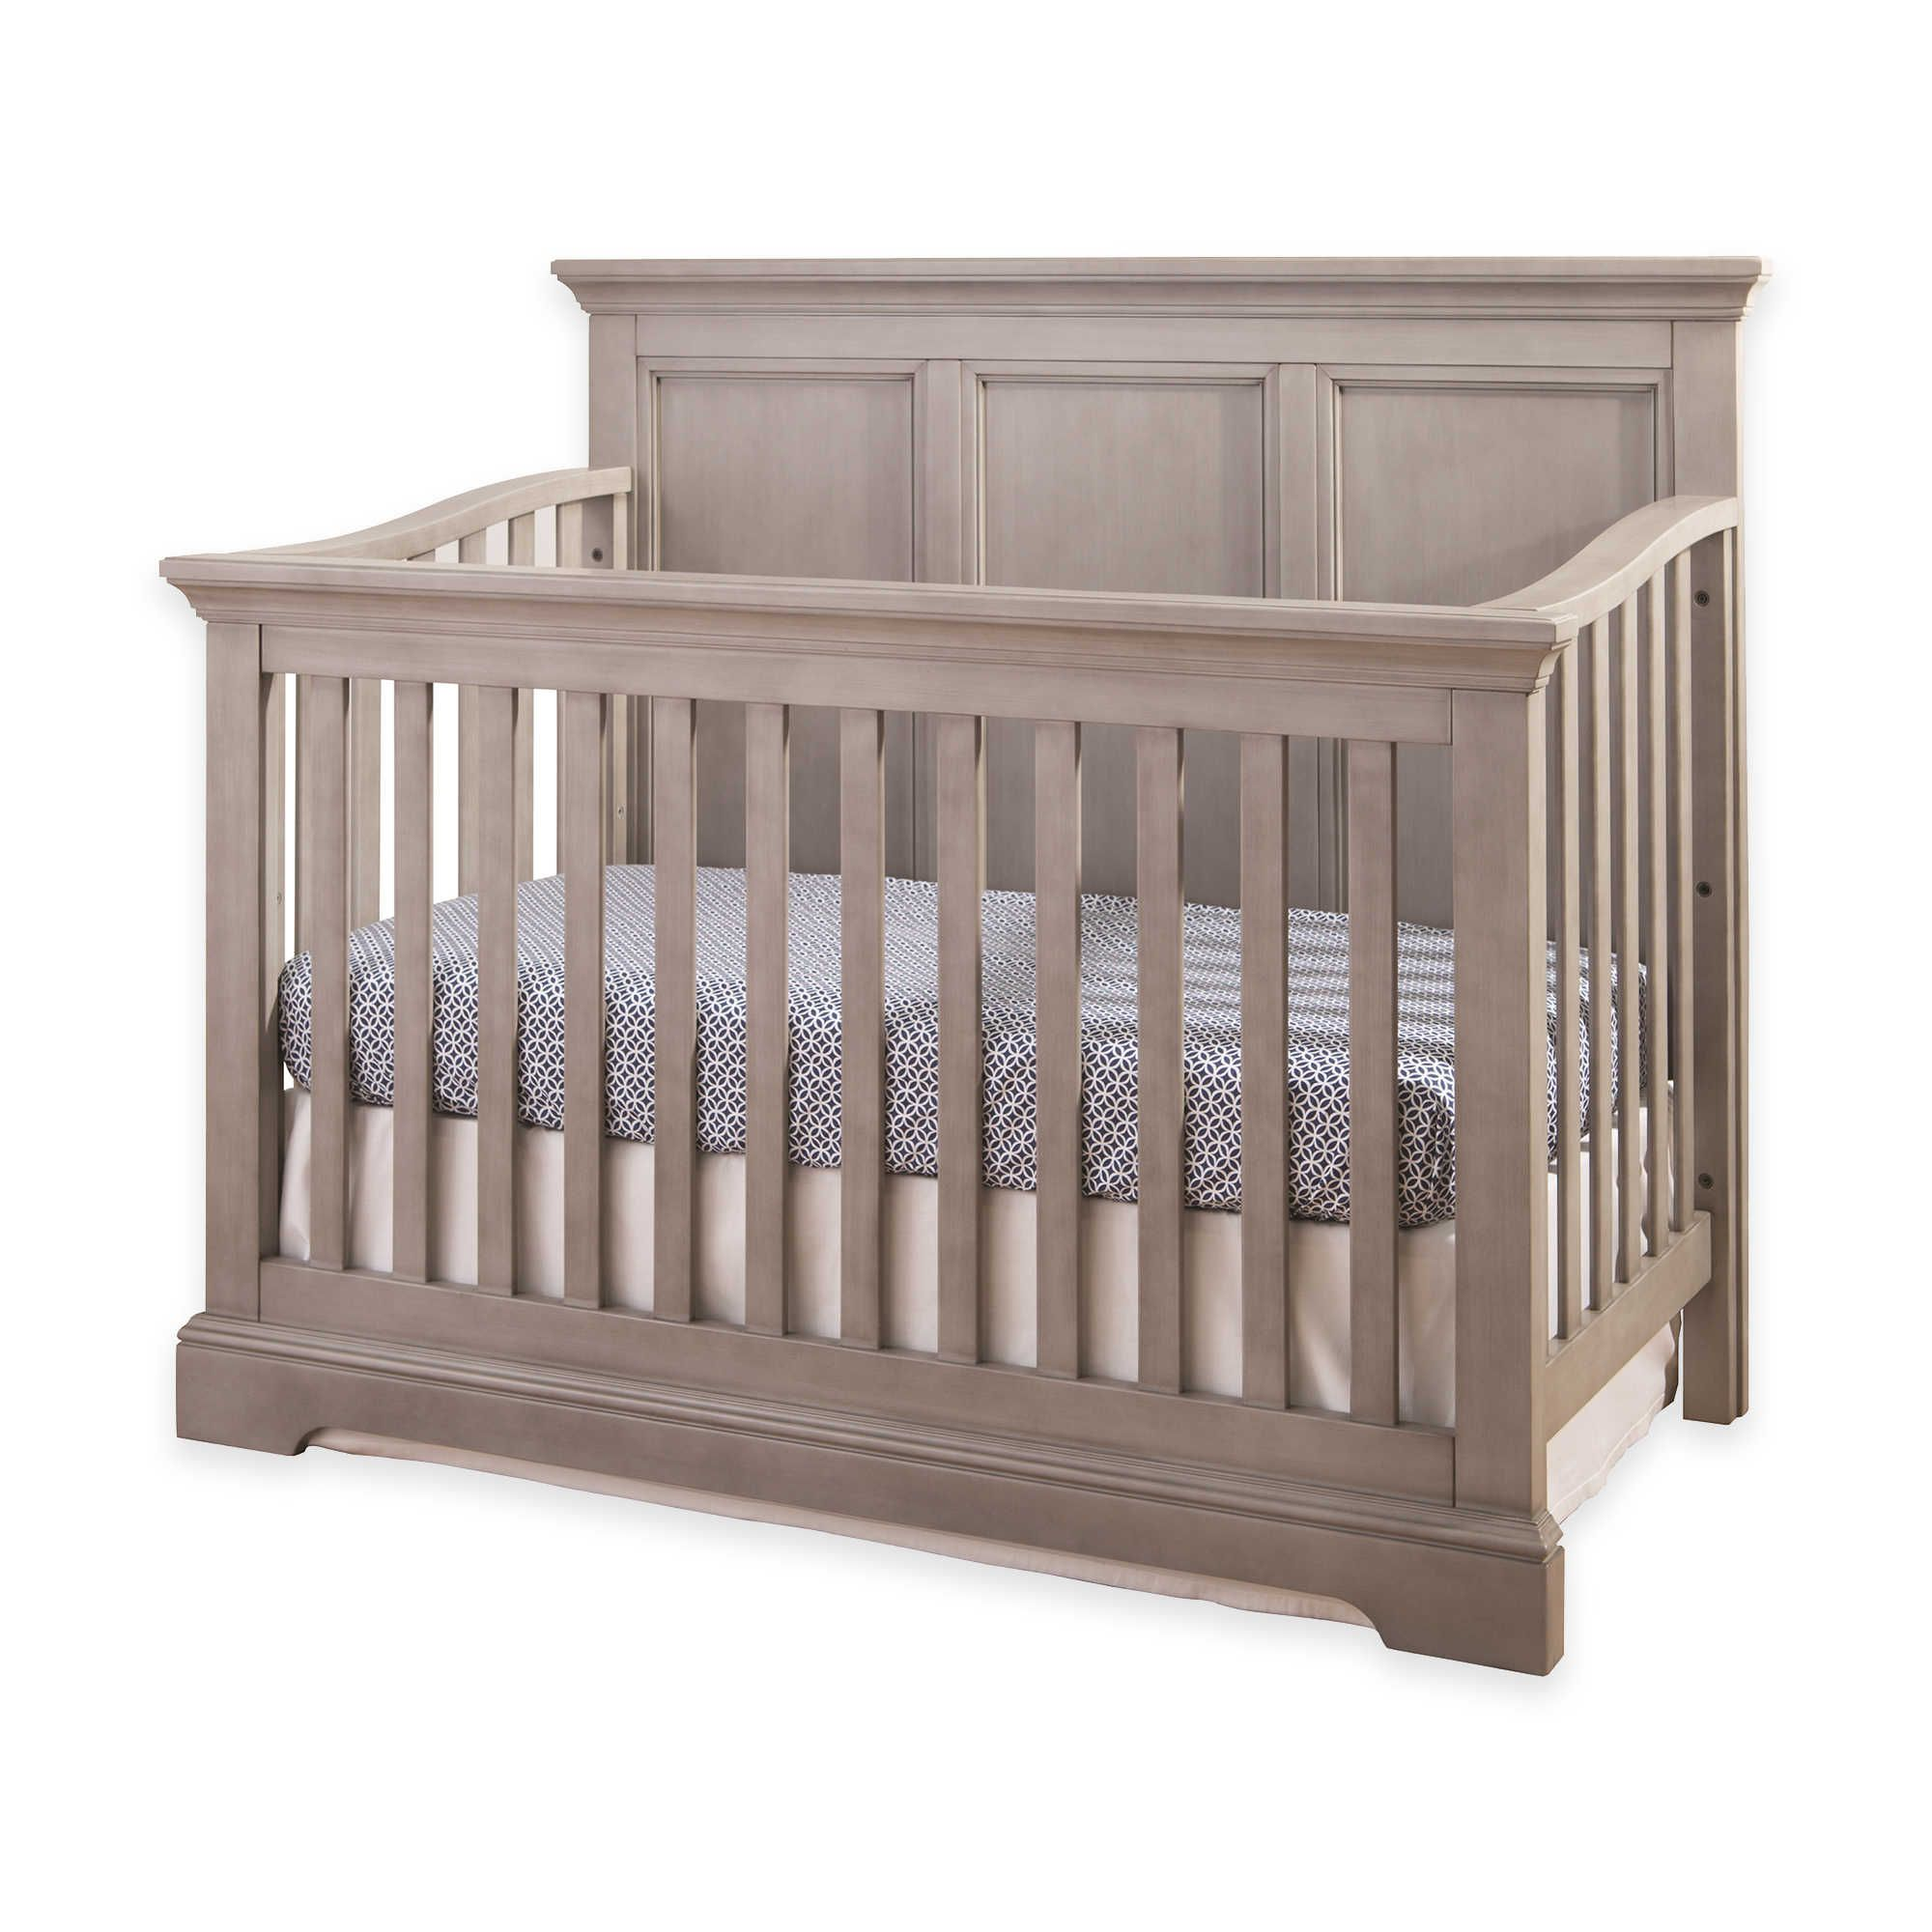 ridge sold and neutral pinterest best tones at pine on westwood bambibabystore images sets cribs features cool furniture warm white nursery gender